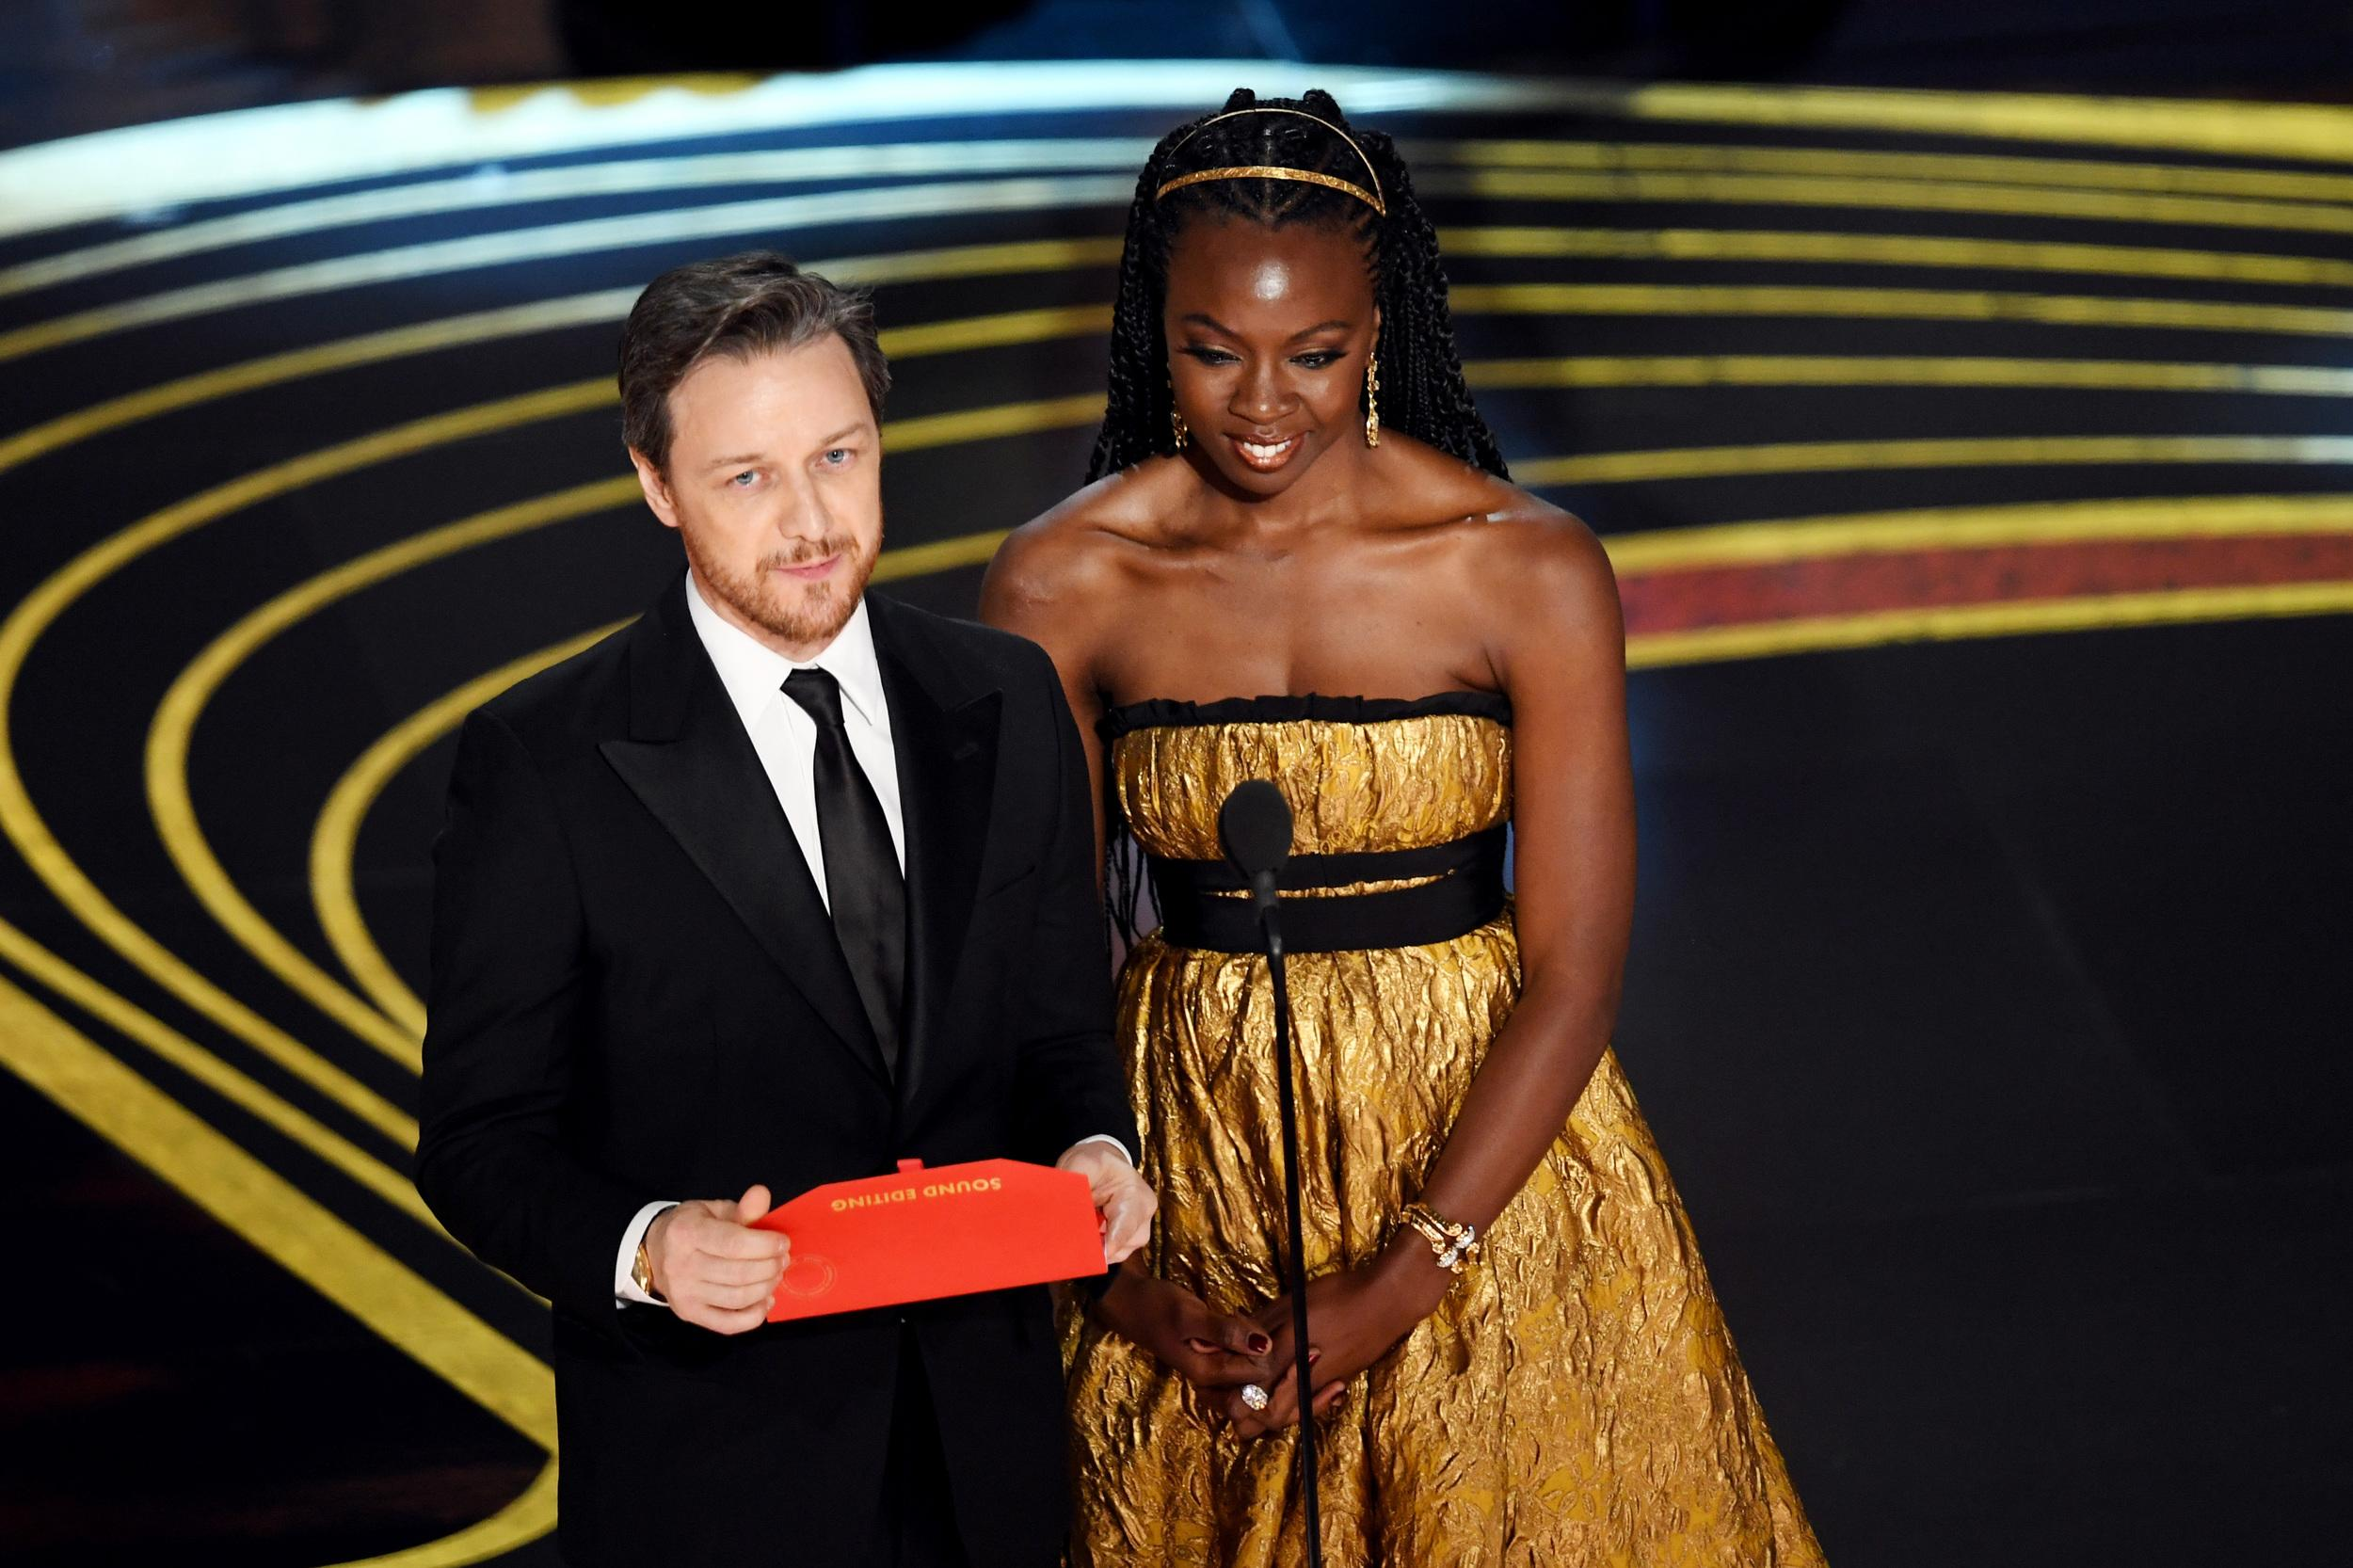 HOLLYWOOD, CALIFORNIA - FEBRUARY 24: (L-R) James McAvoy and Danai Gurira speak onstage during the 91st Annual Academy Awards at Dolby Theatre on February 24, 2019 in Hollywood, California. (Photo by Kevin Winter/Getty Images)